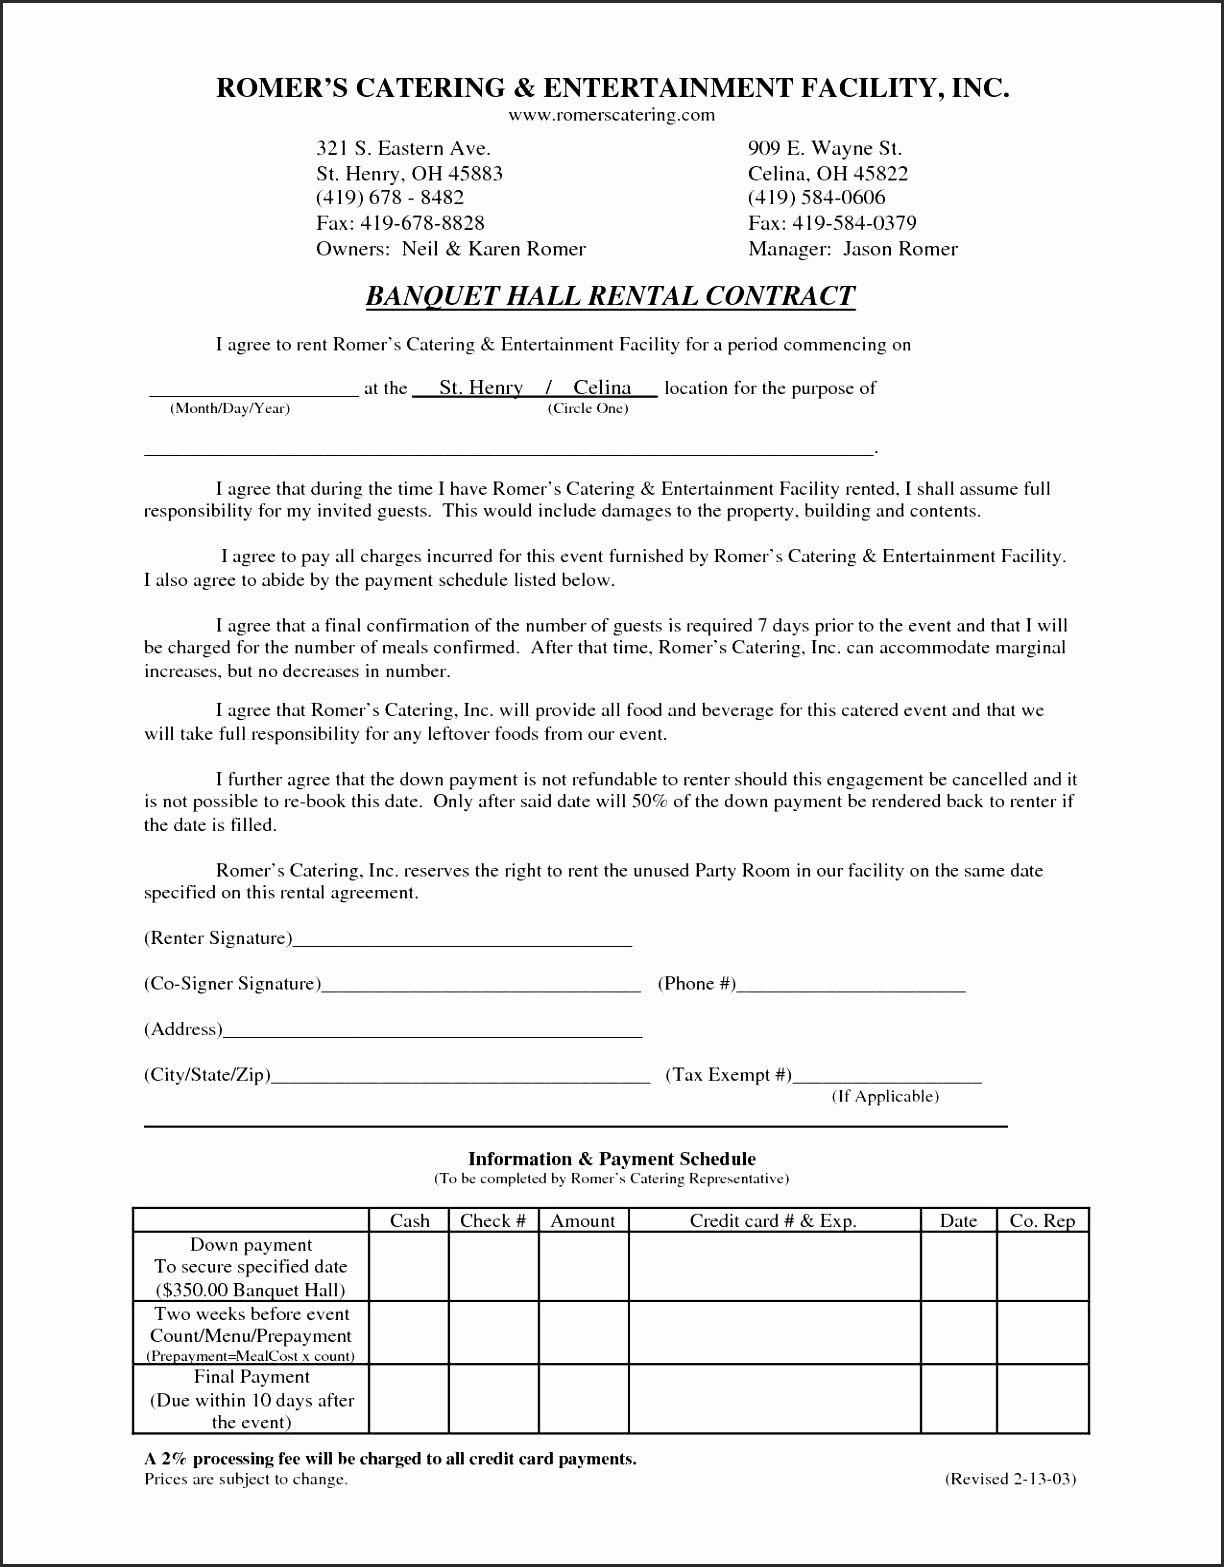 Valentine Day Preschool Bulletin Board Ideas Xldcs Beautiful Valentine S Day Bulletin Board Ideas Rental Agreement Templates Contract Template Lease Agreement